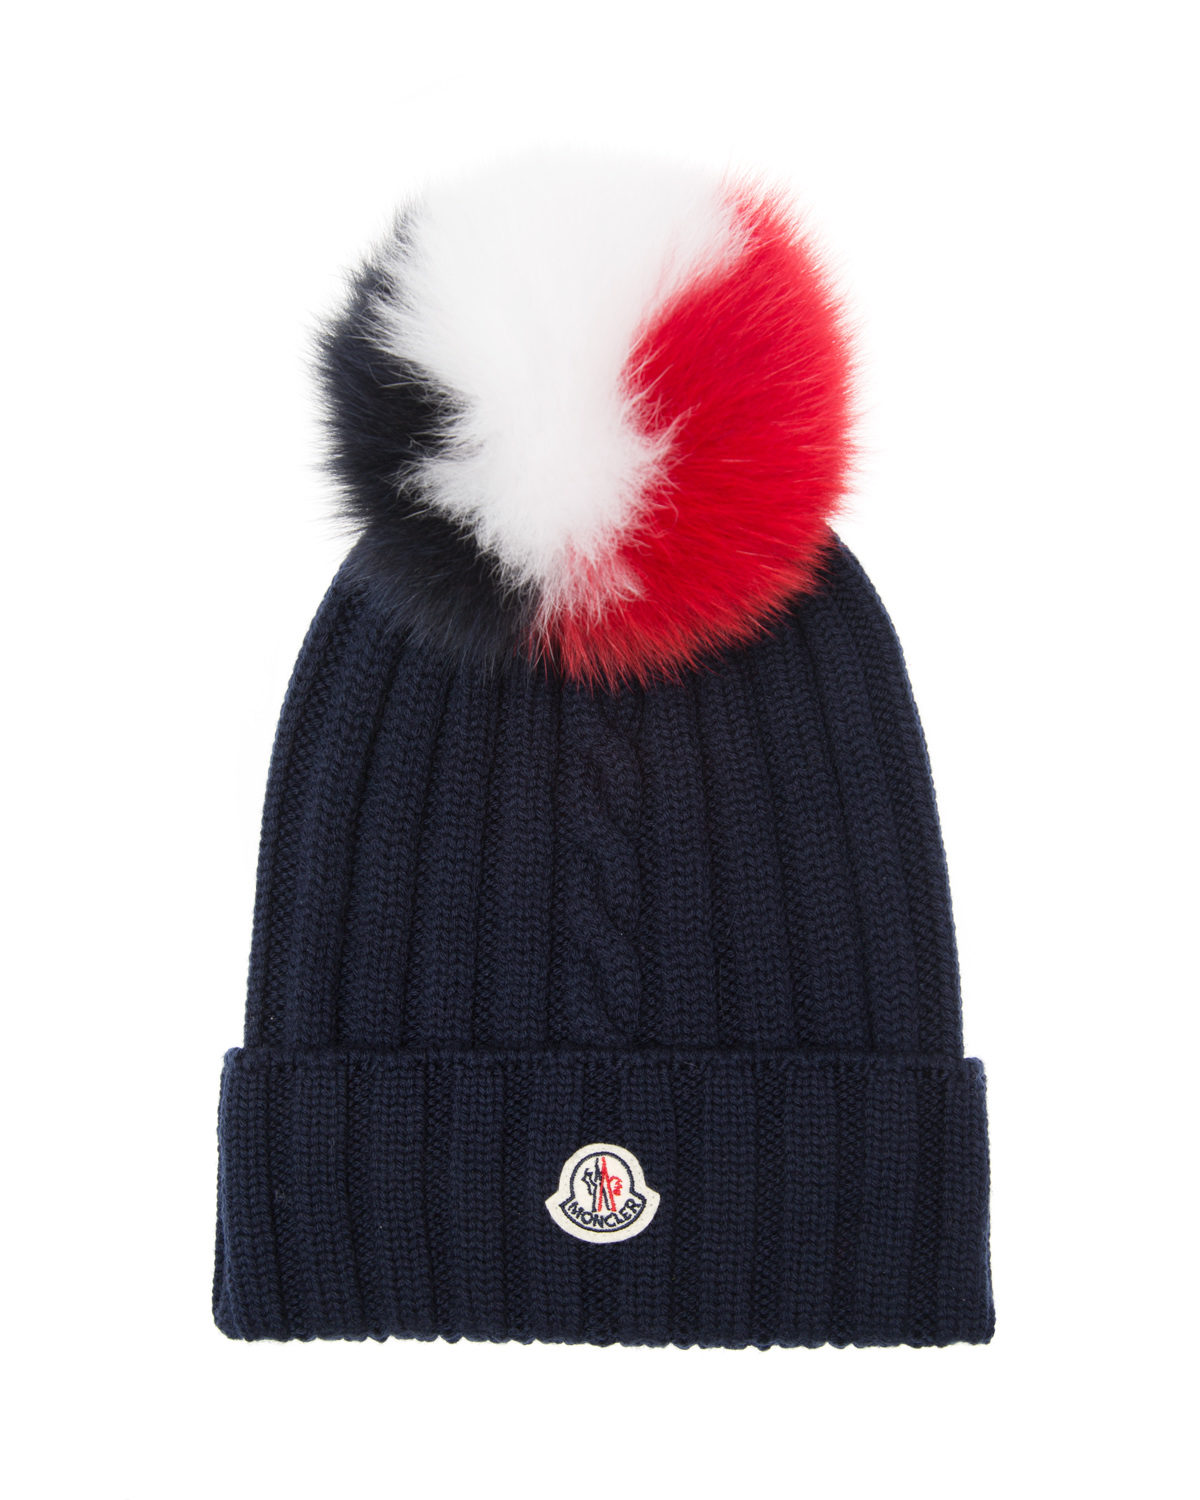 Moncler Women s Rib-knit Beanie Hat Navy - Linea Fashion 8224b2ae788